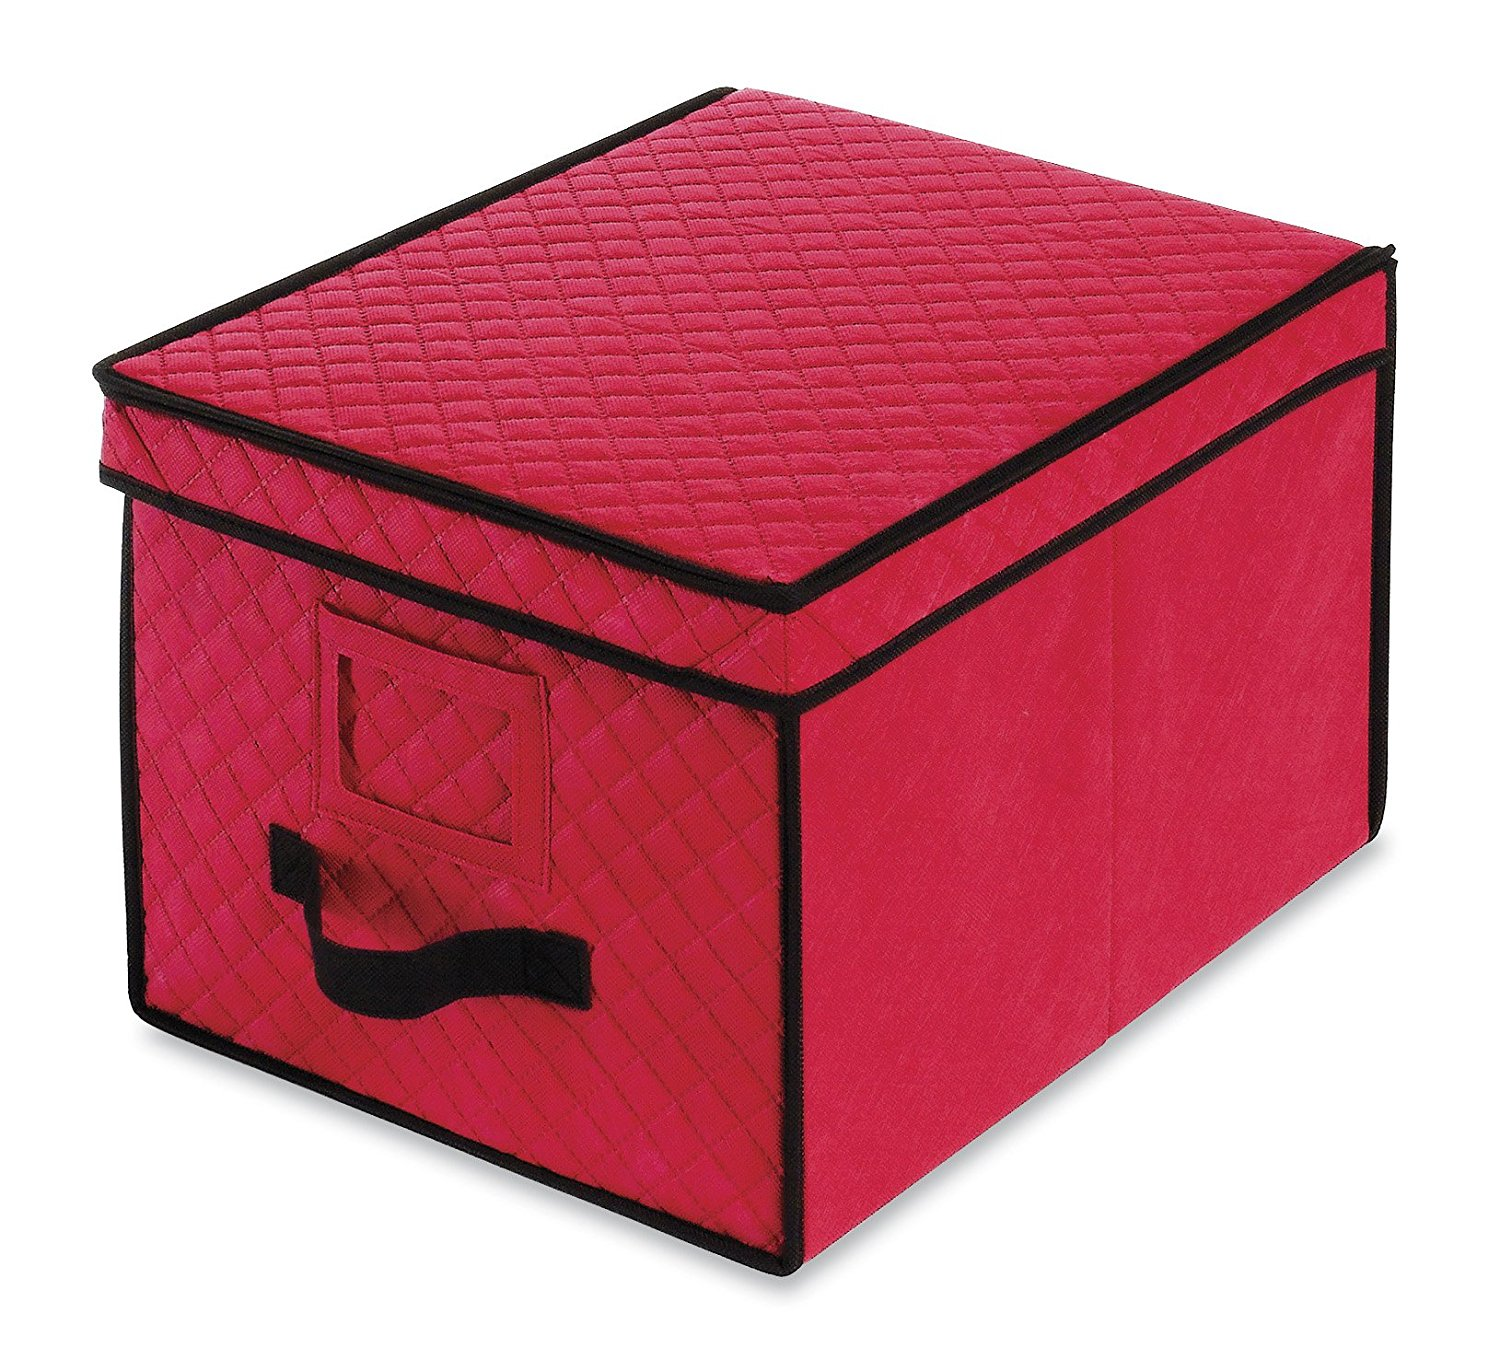 6129-2688 Ornament Storage Box, 61295340 Christmas Large Box compartments Case Red Gift Storage Cube Ornament 61292688... by